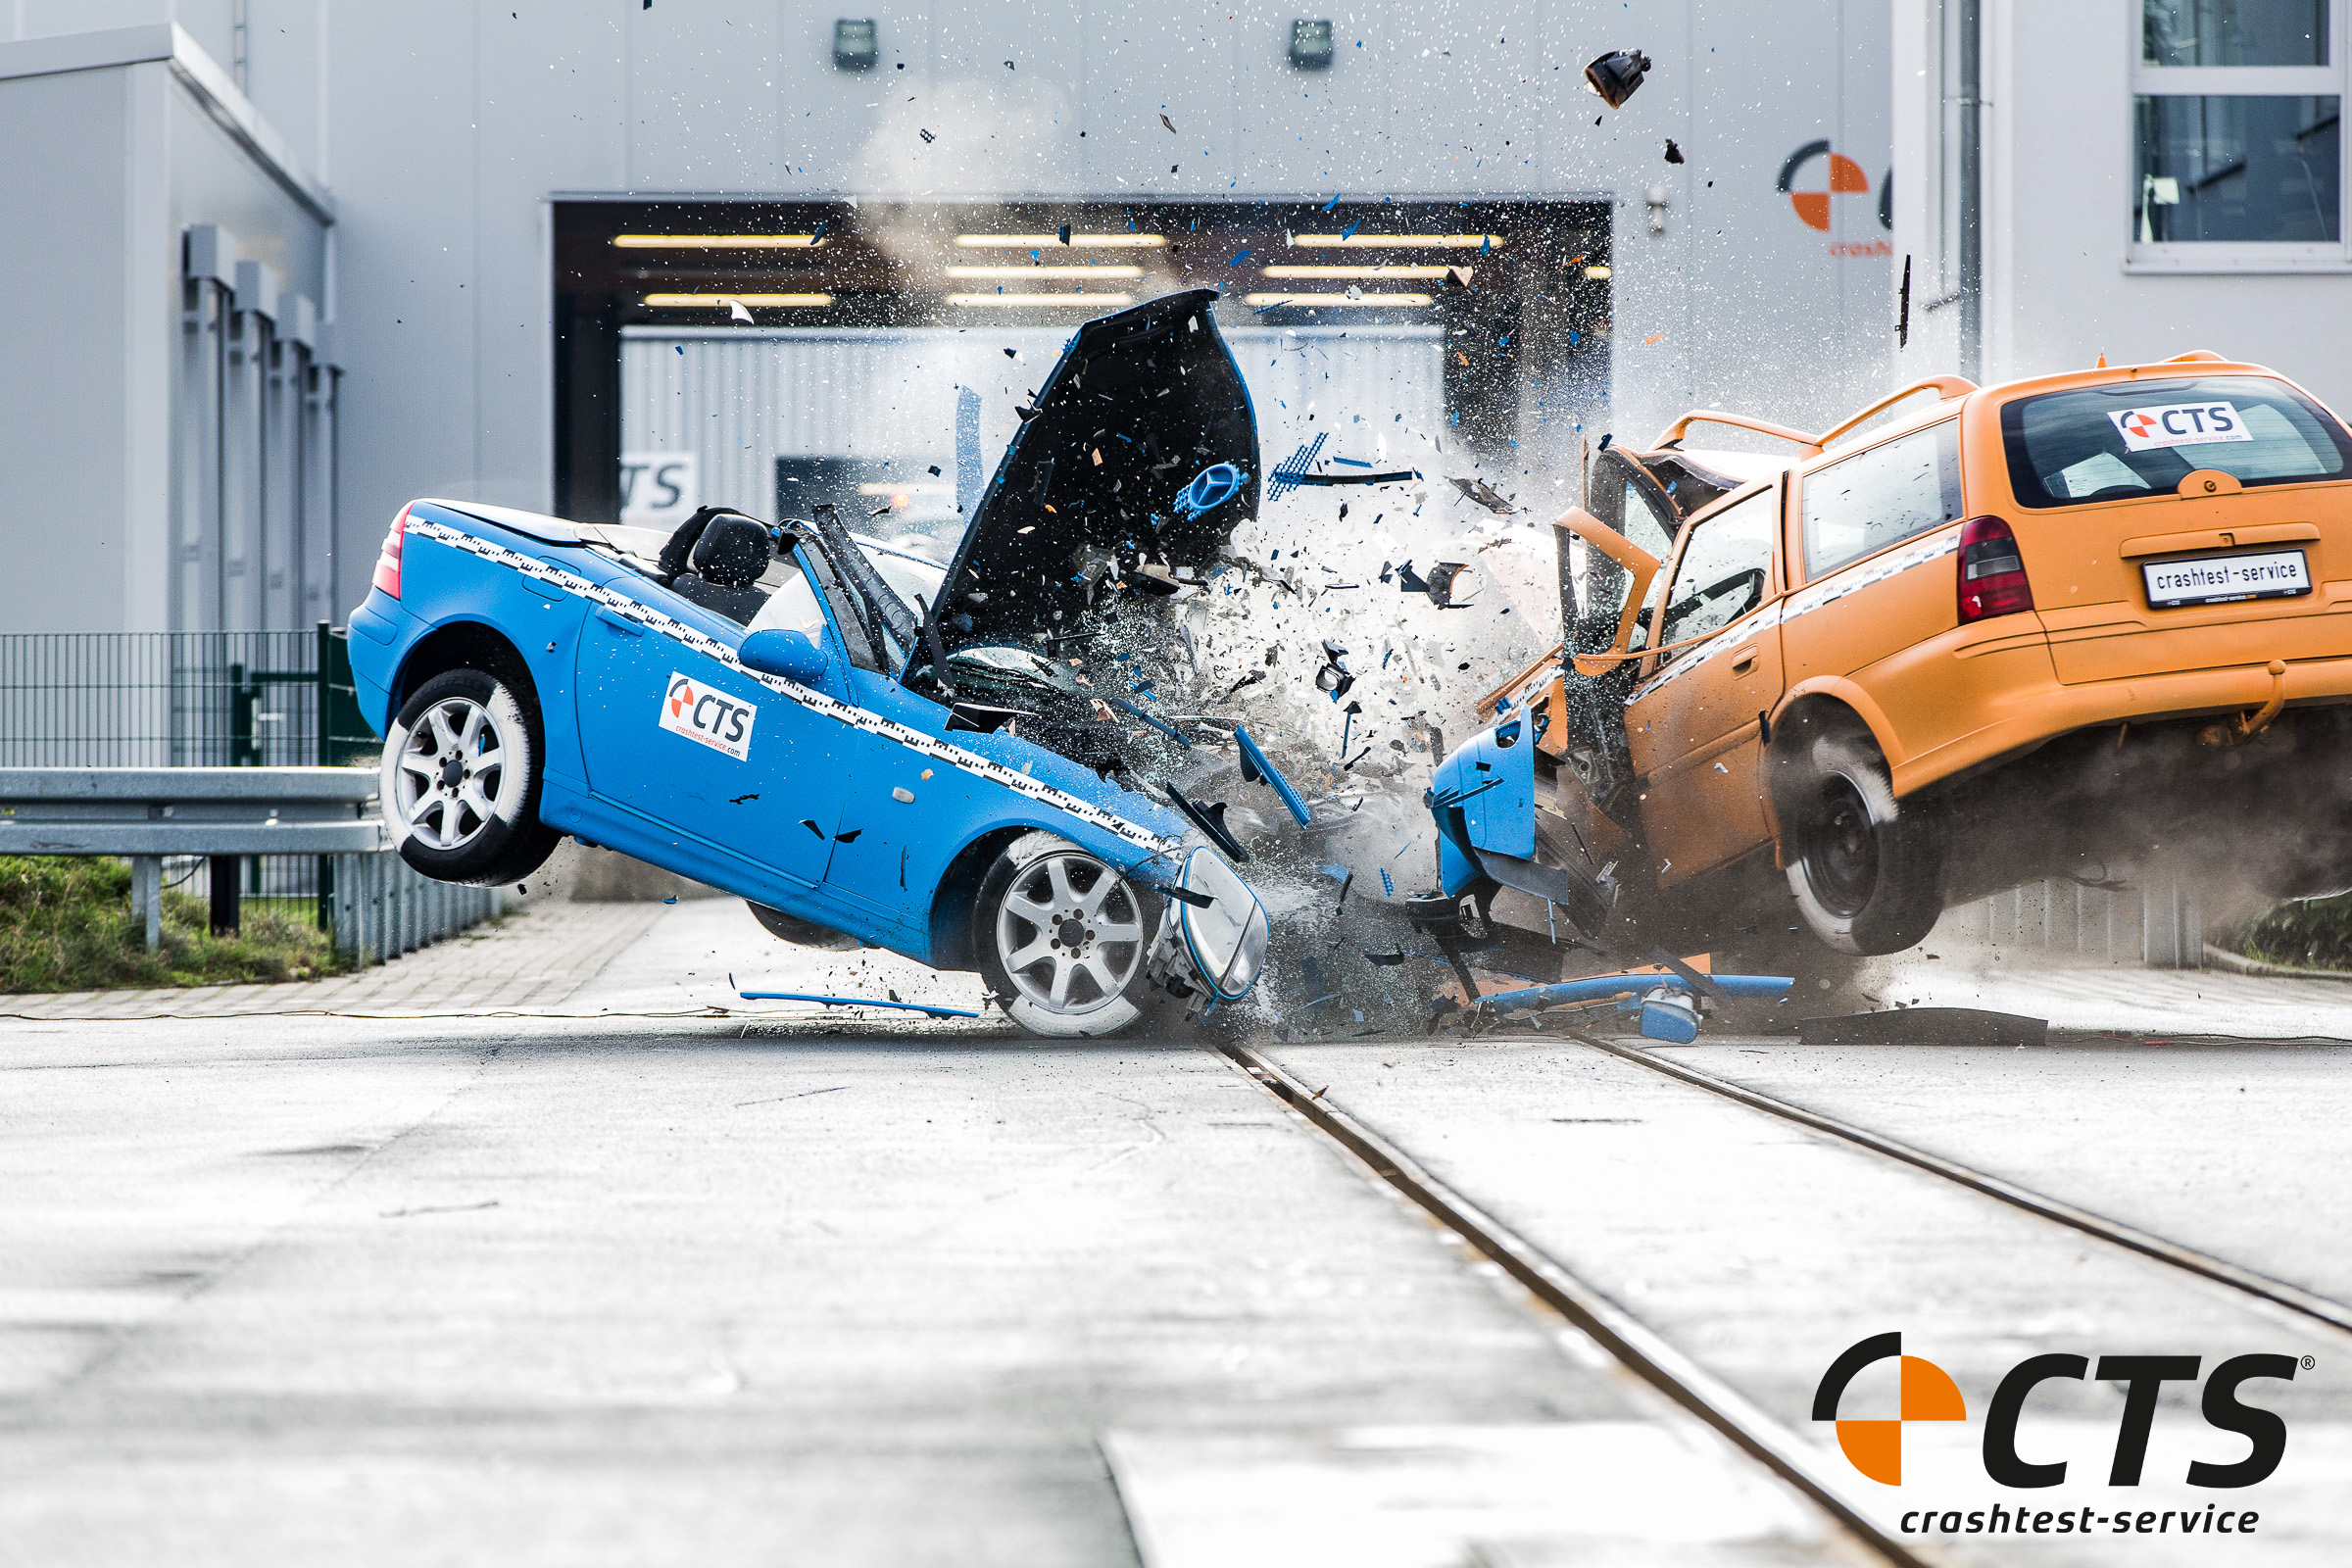 SAVE THE DATE: CTS CRASH DAY 21.09.2021!